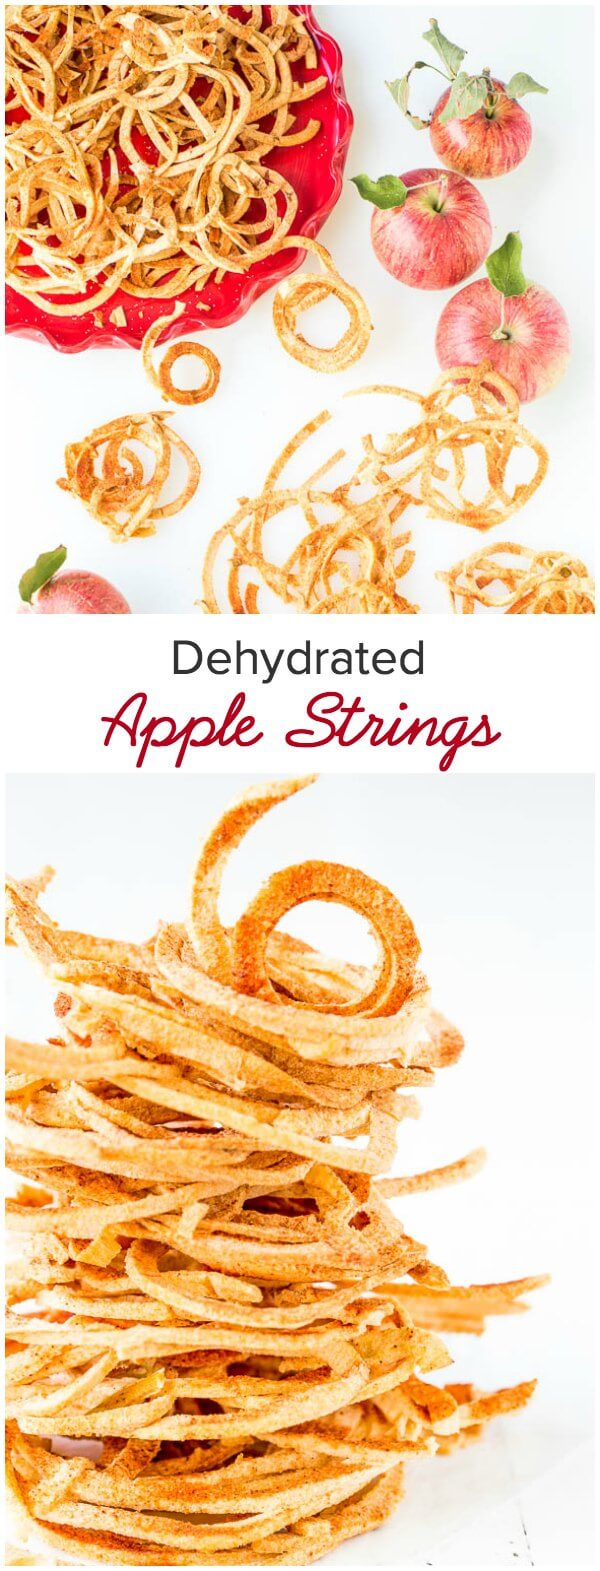 These baked apple strings taste exactly like freeze dried apples. So light and airy, crispy and addicting! And the best part is no special appliance required, just your oven.